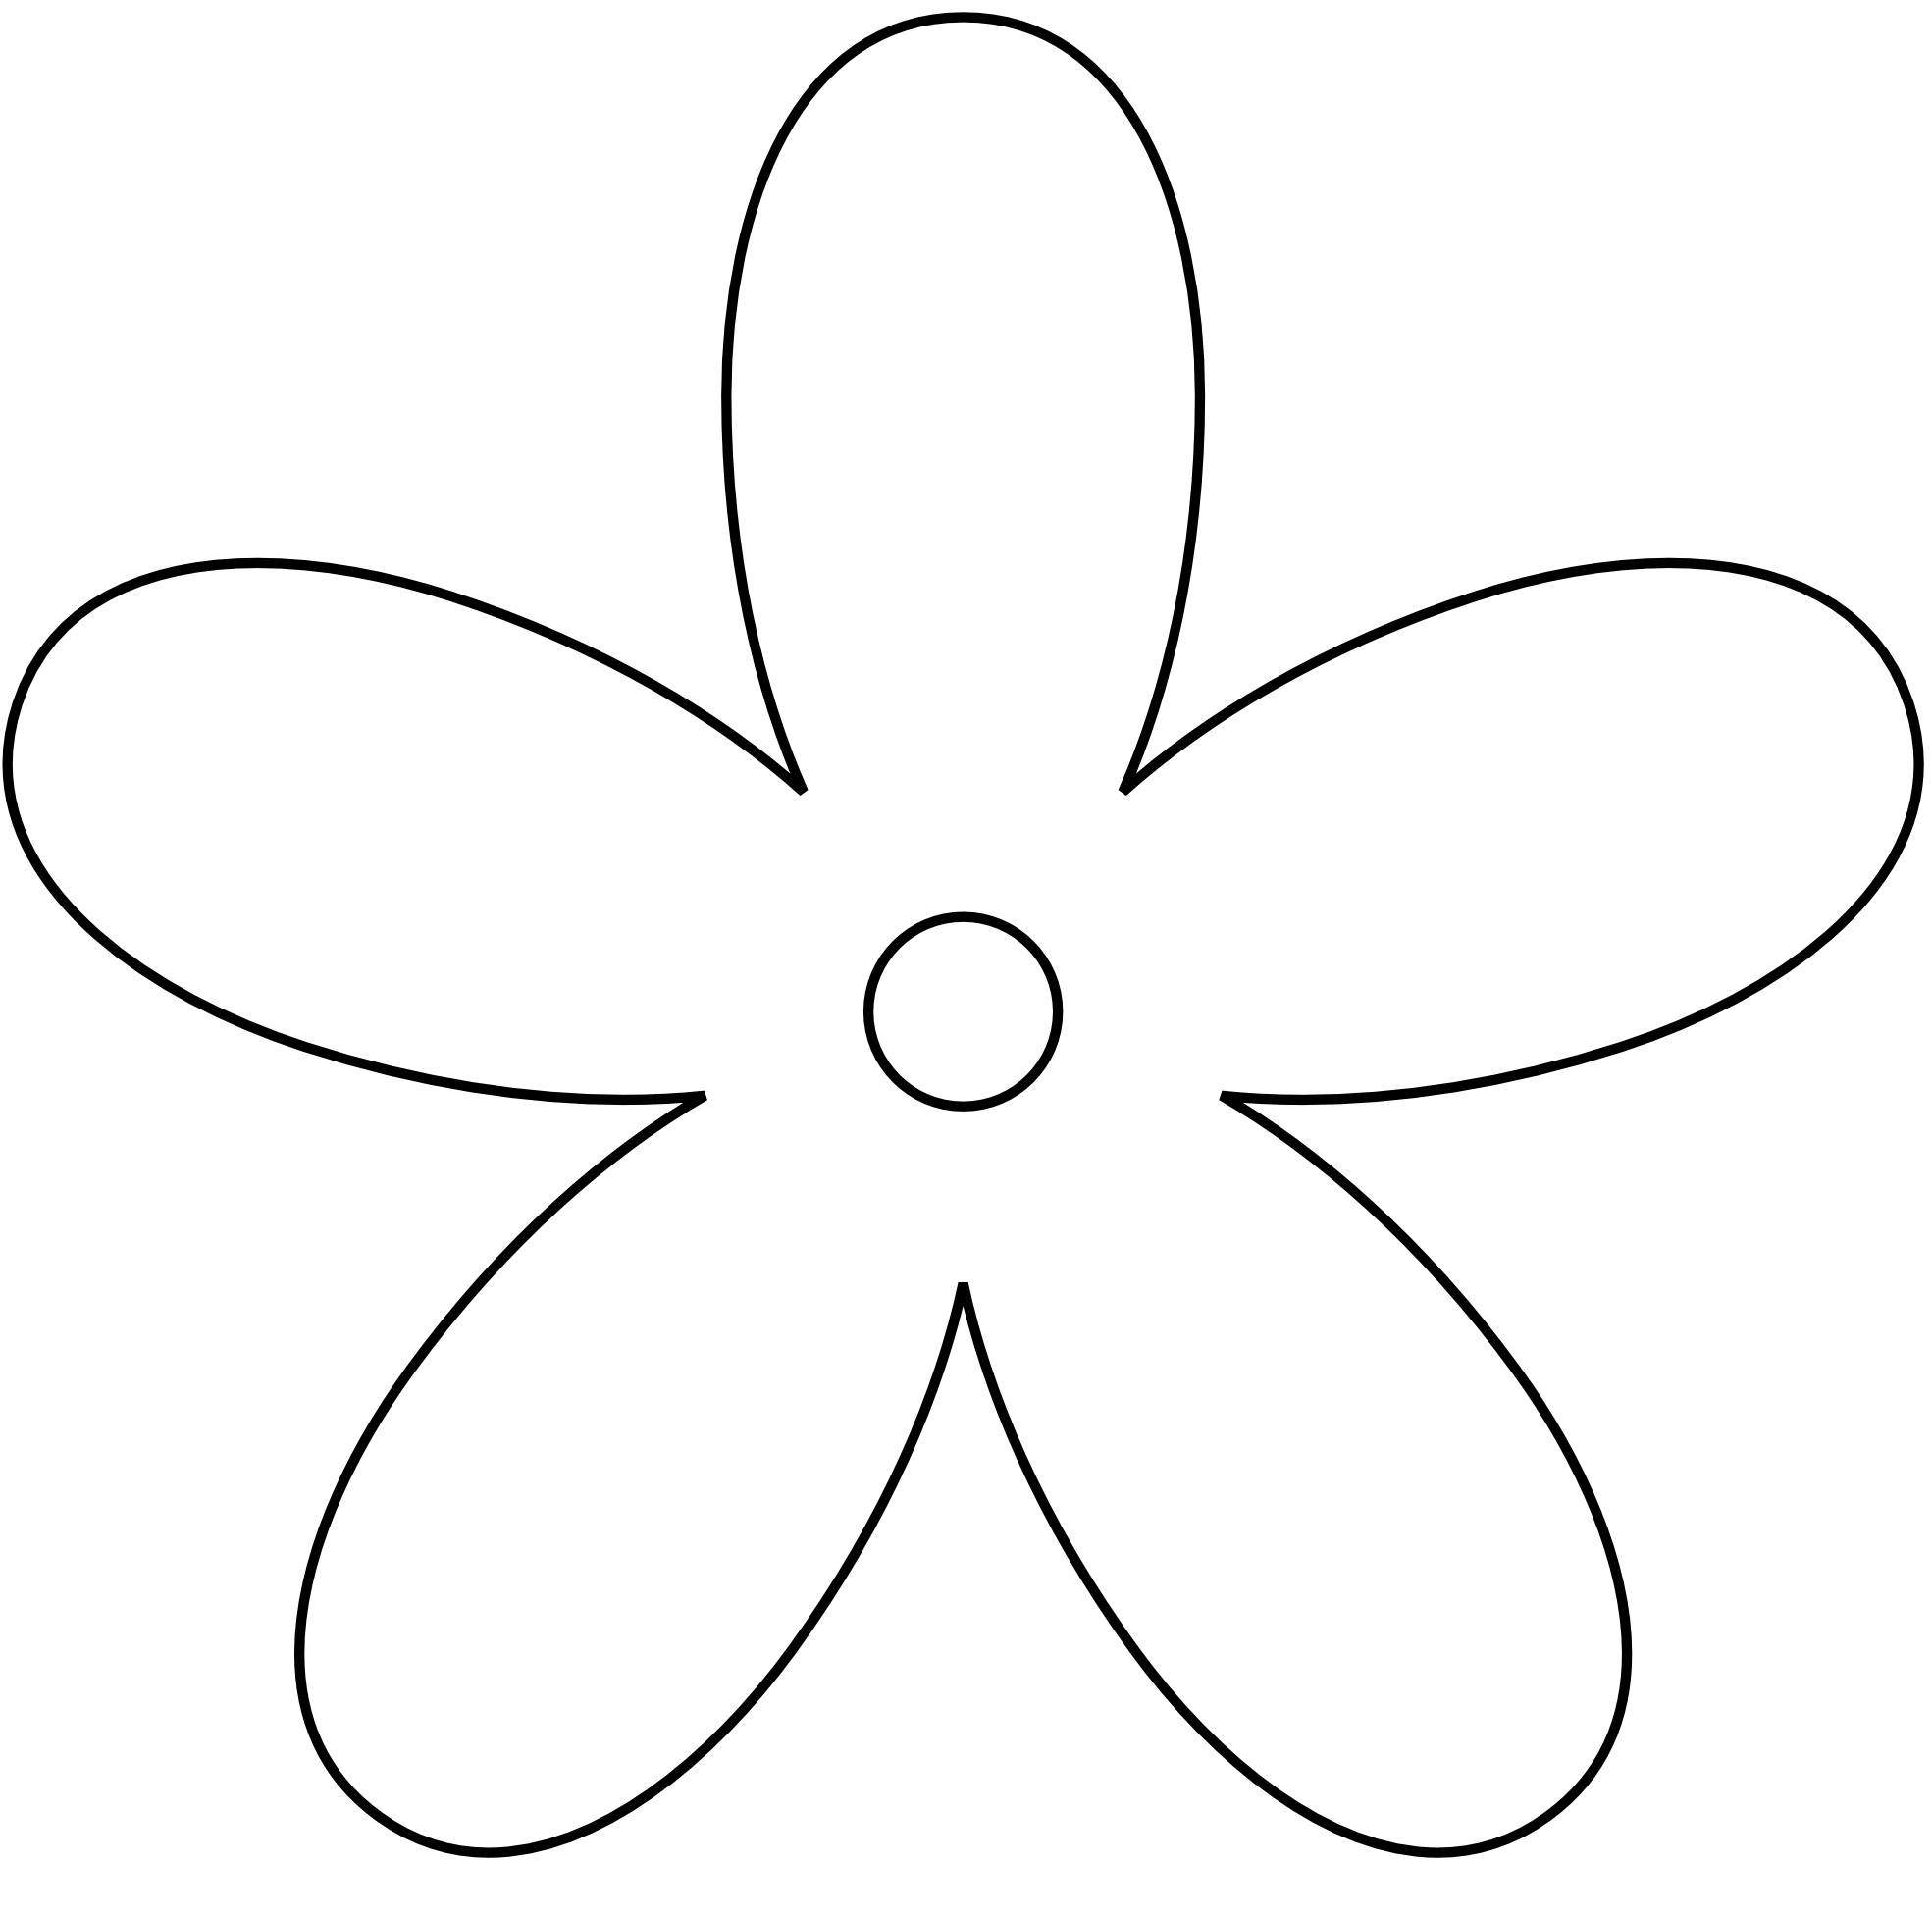 simple%20flower%20clipart%20black%20and%20white